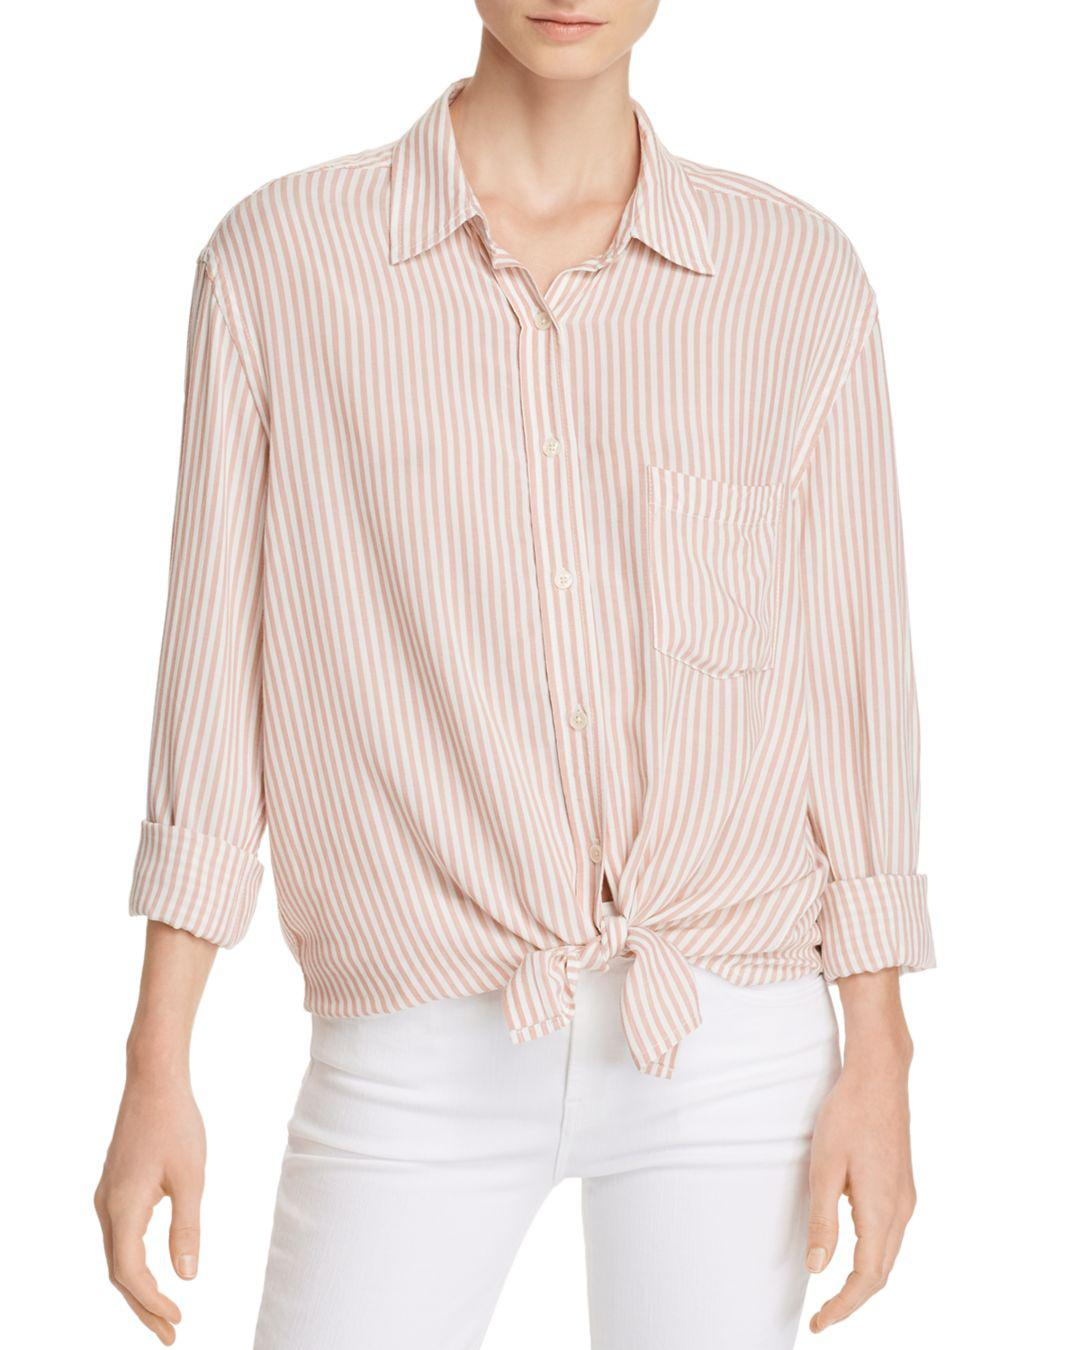 81c7c569ffe68a Lyst - 7 For All Mankind Striped High low Shirt in Pink